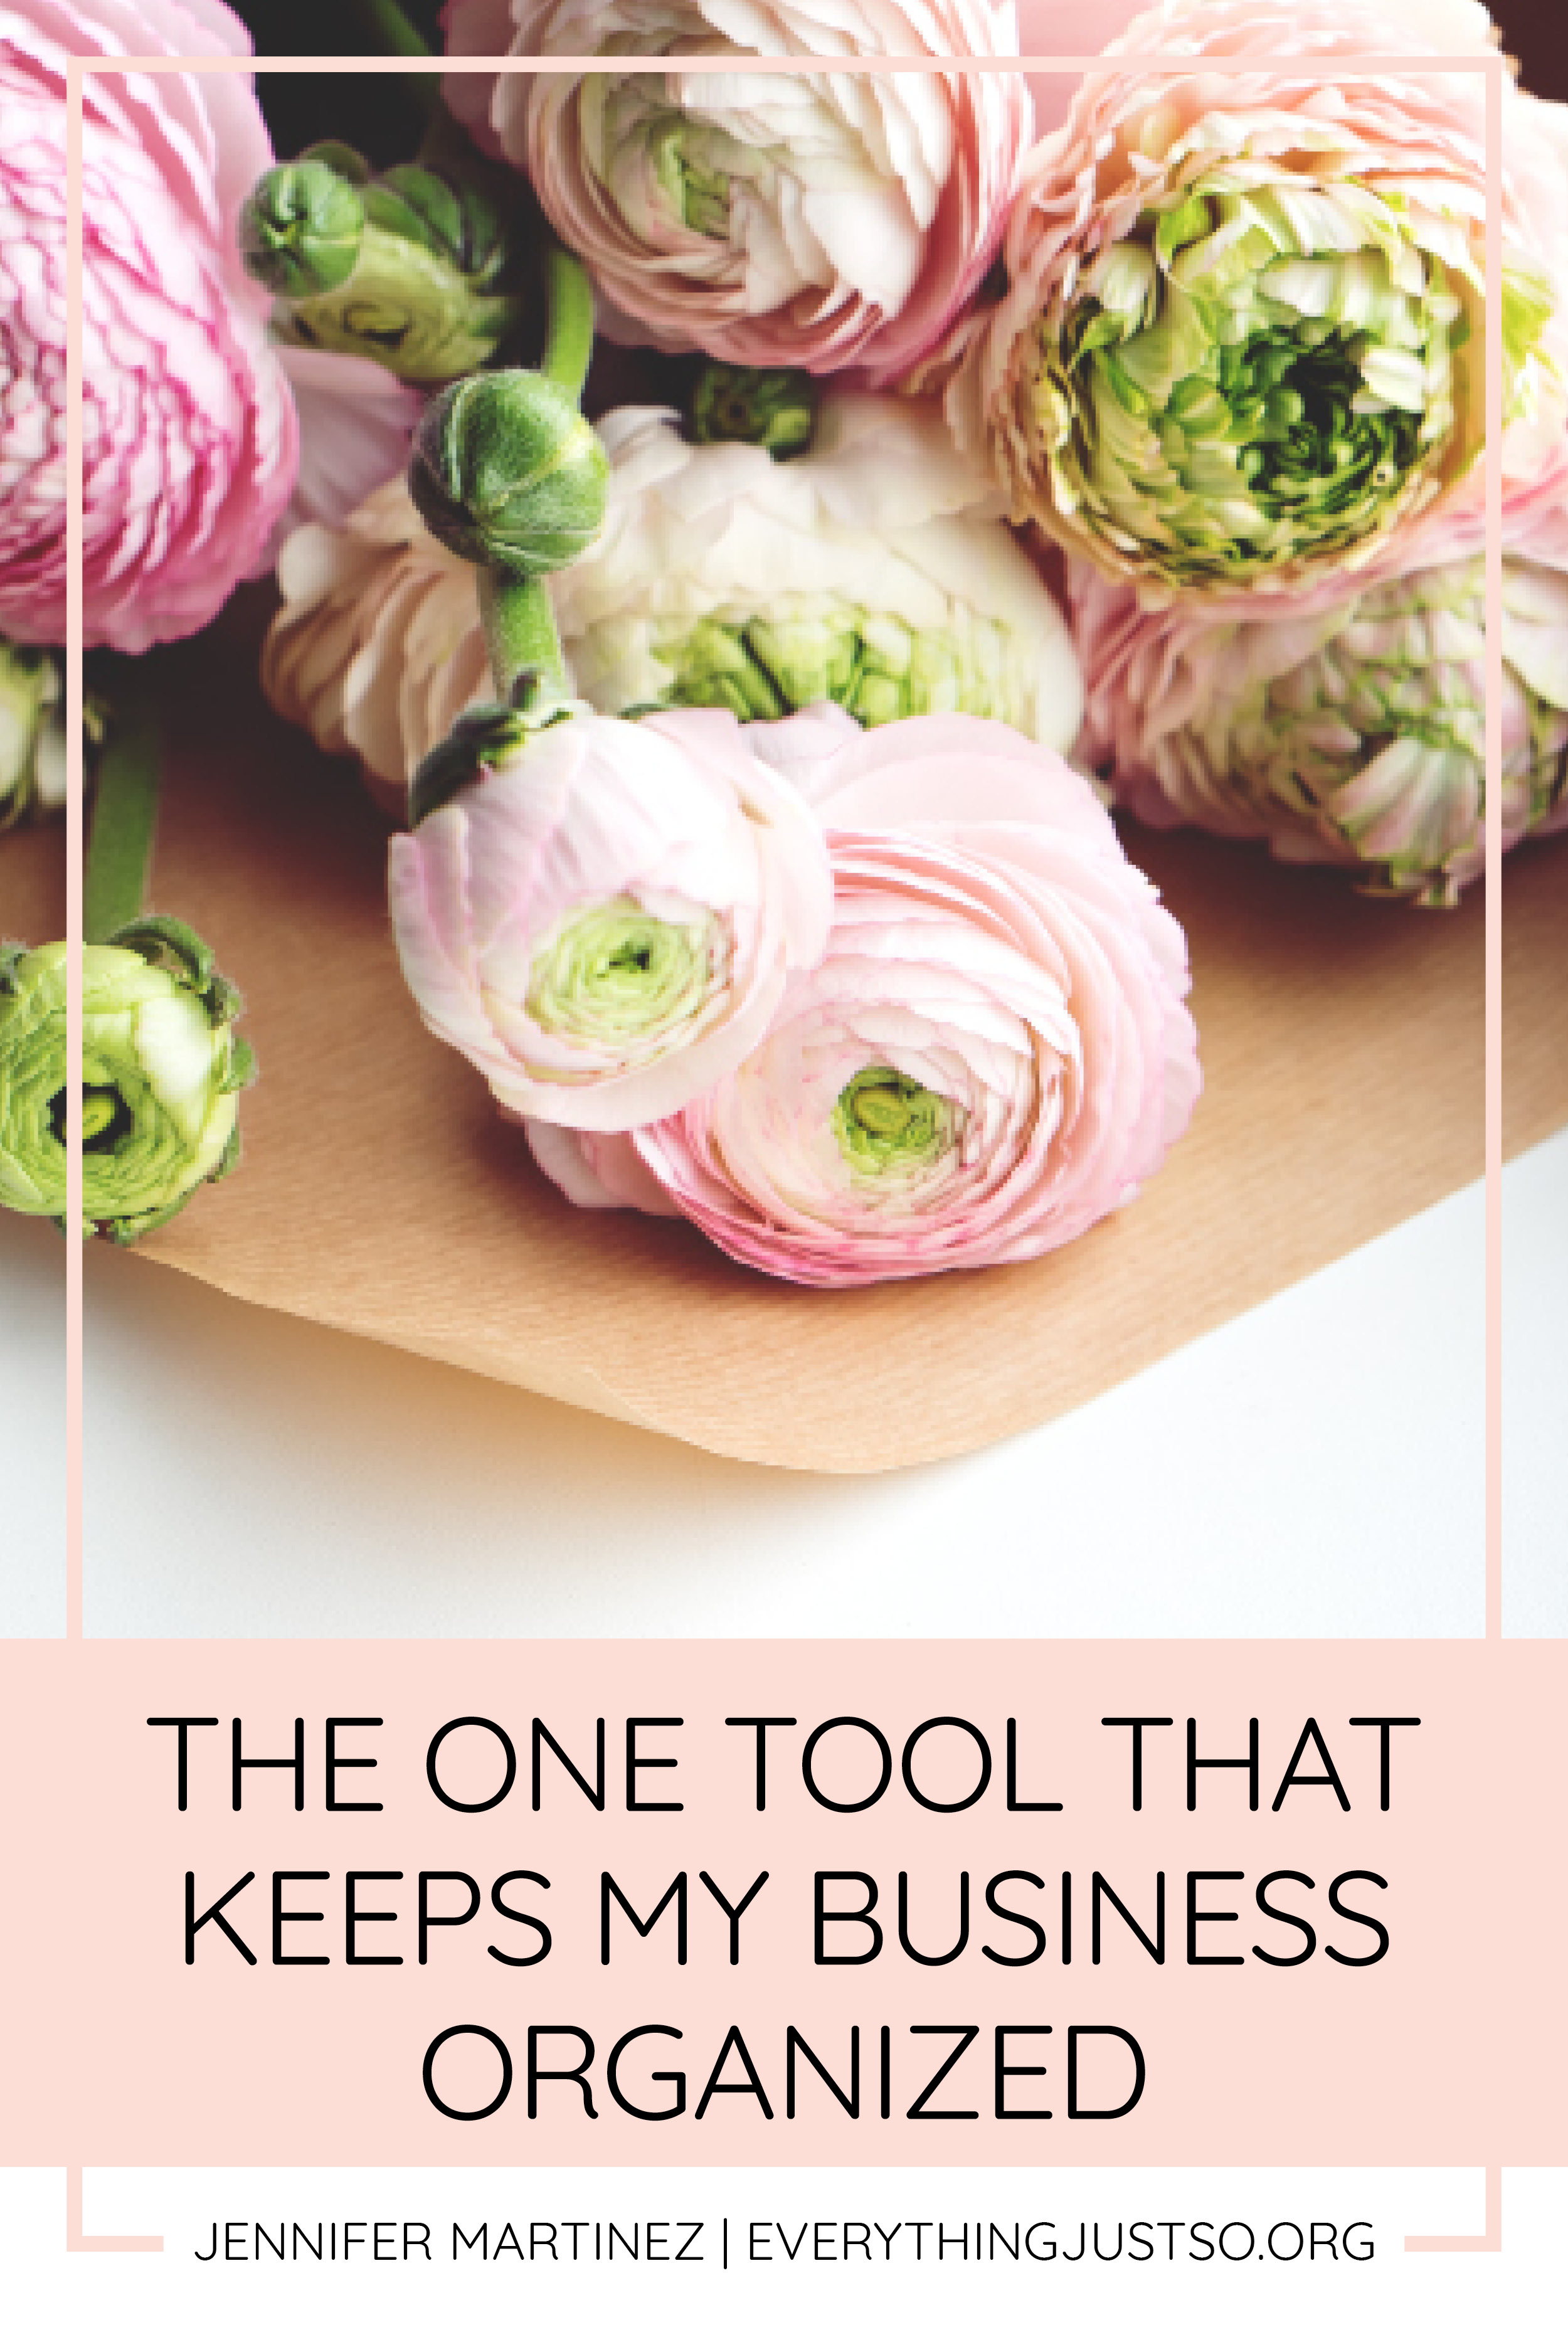 The One Tool that Keeps my Business Organized | Wondering how to get organized and keep your online business running smoothly? This one tool works to organize it all – blog post planning, resource ideas, sales and promotional data, tax information, and more. No need for multiple tools – get organized with this one business planner. | everythingjustso.org #tptplanner #teacherspayteachersbinder #tptsellerbinder